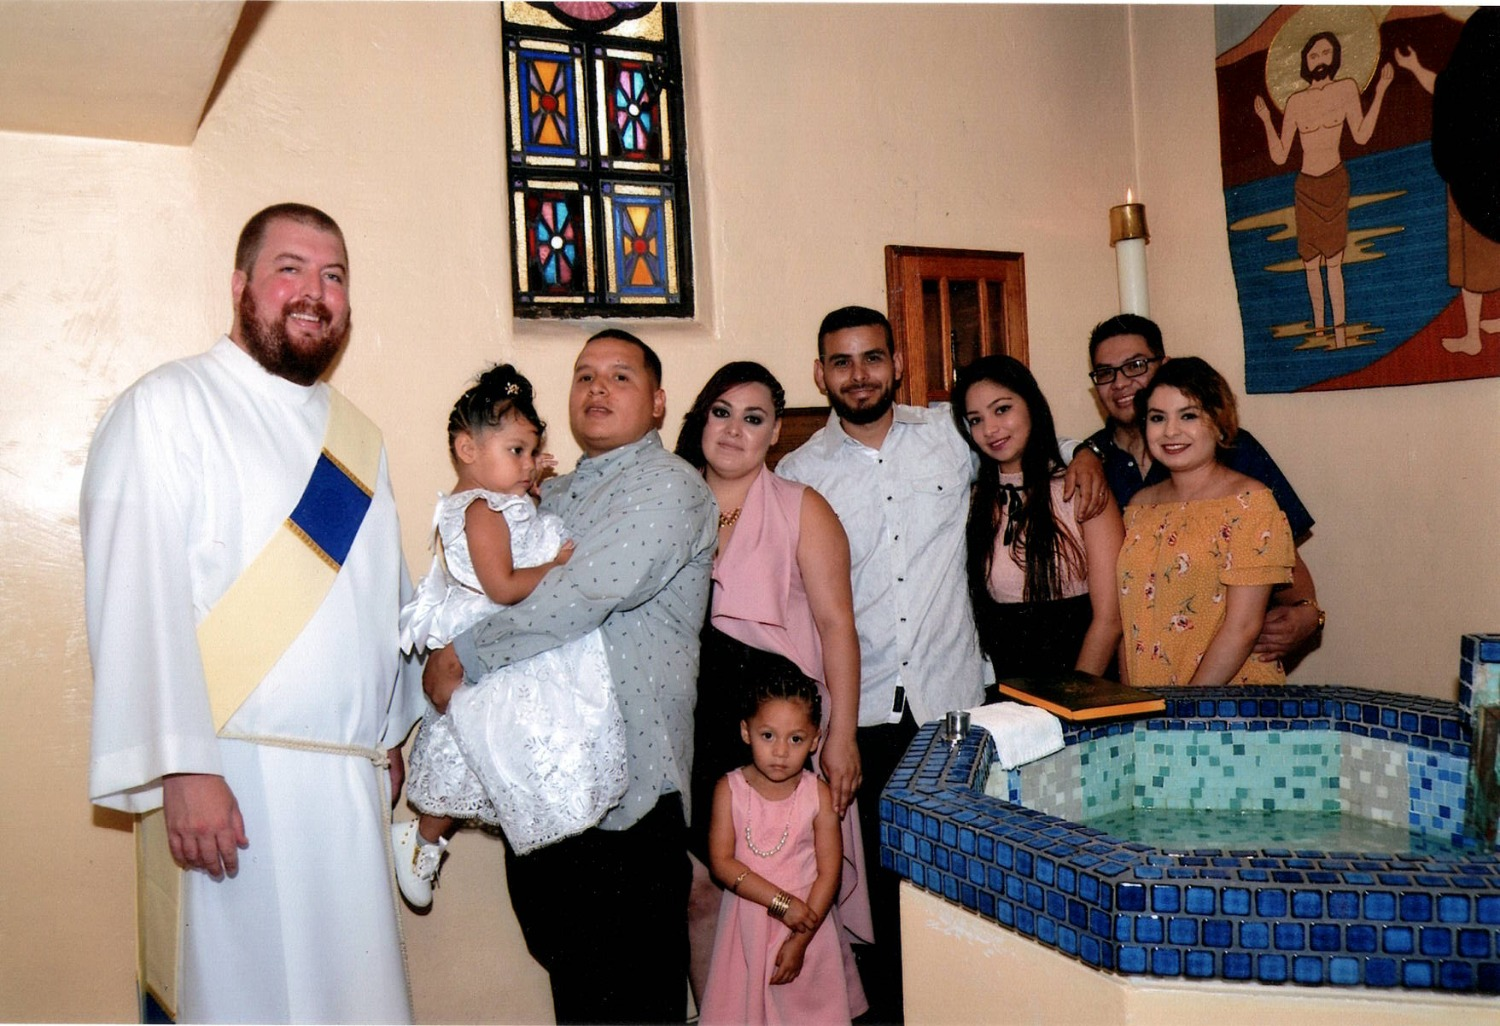 Deacon Max and a family pose for a picture